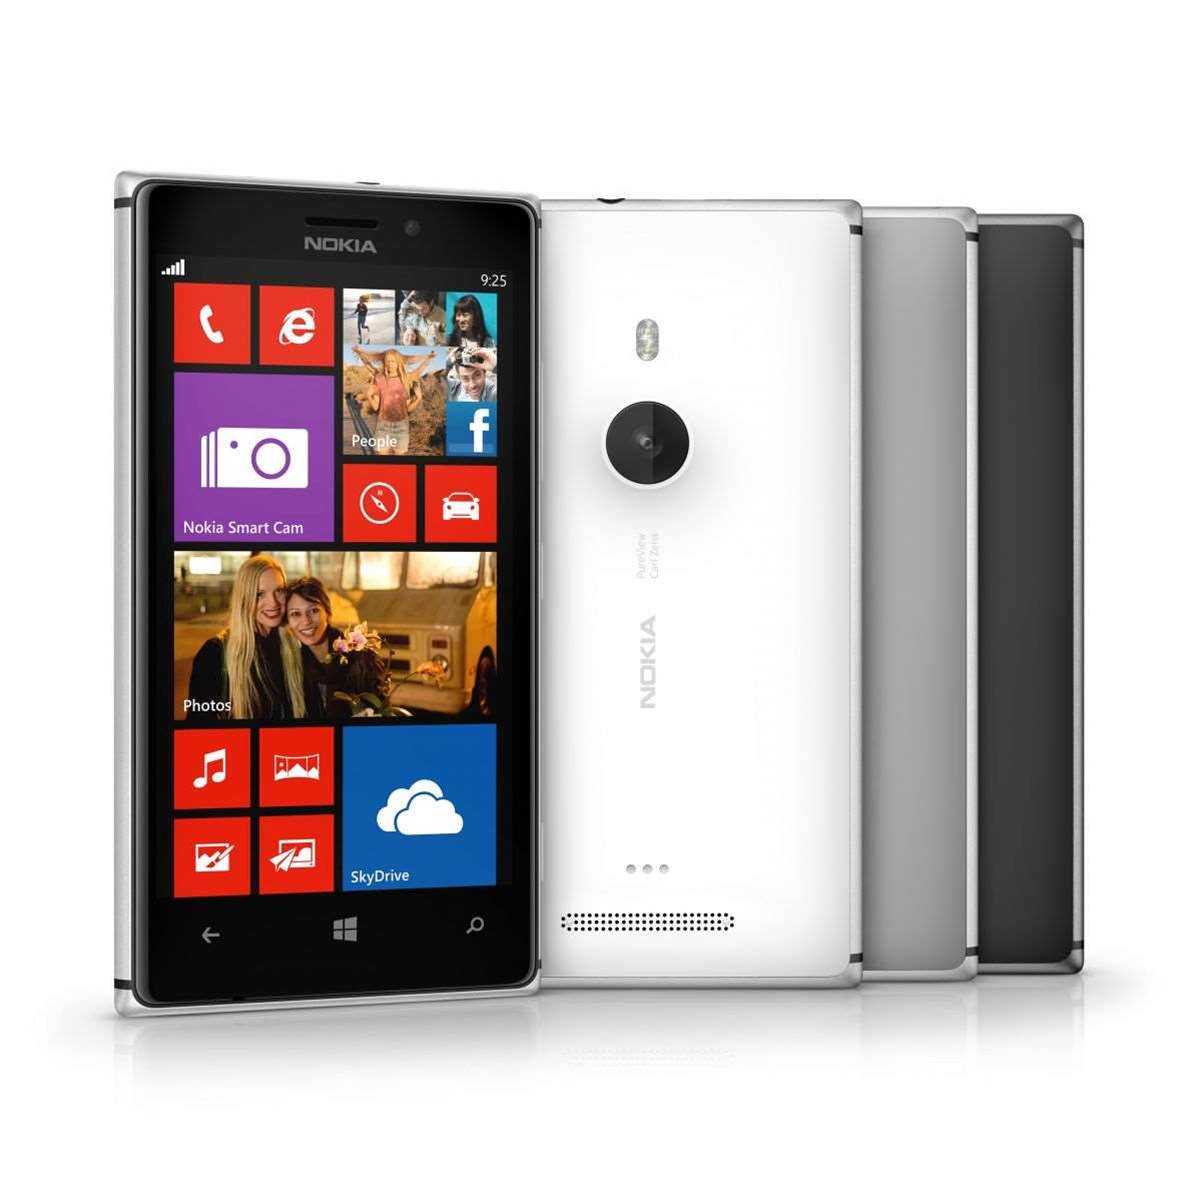 Nokia Lumia 925 now available in stores and for pre-order from Optus